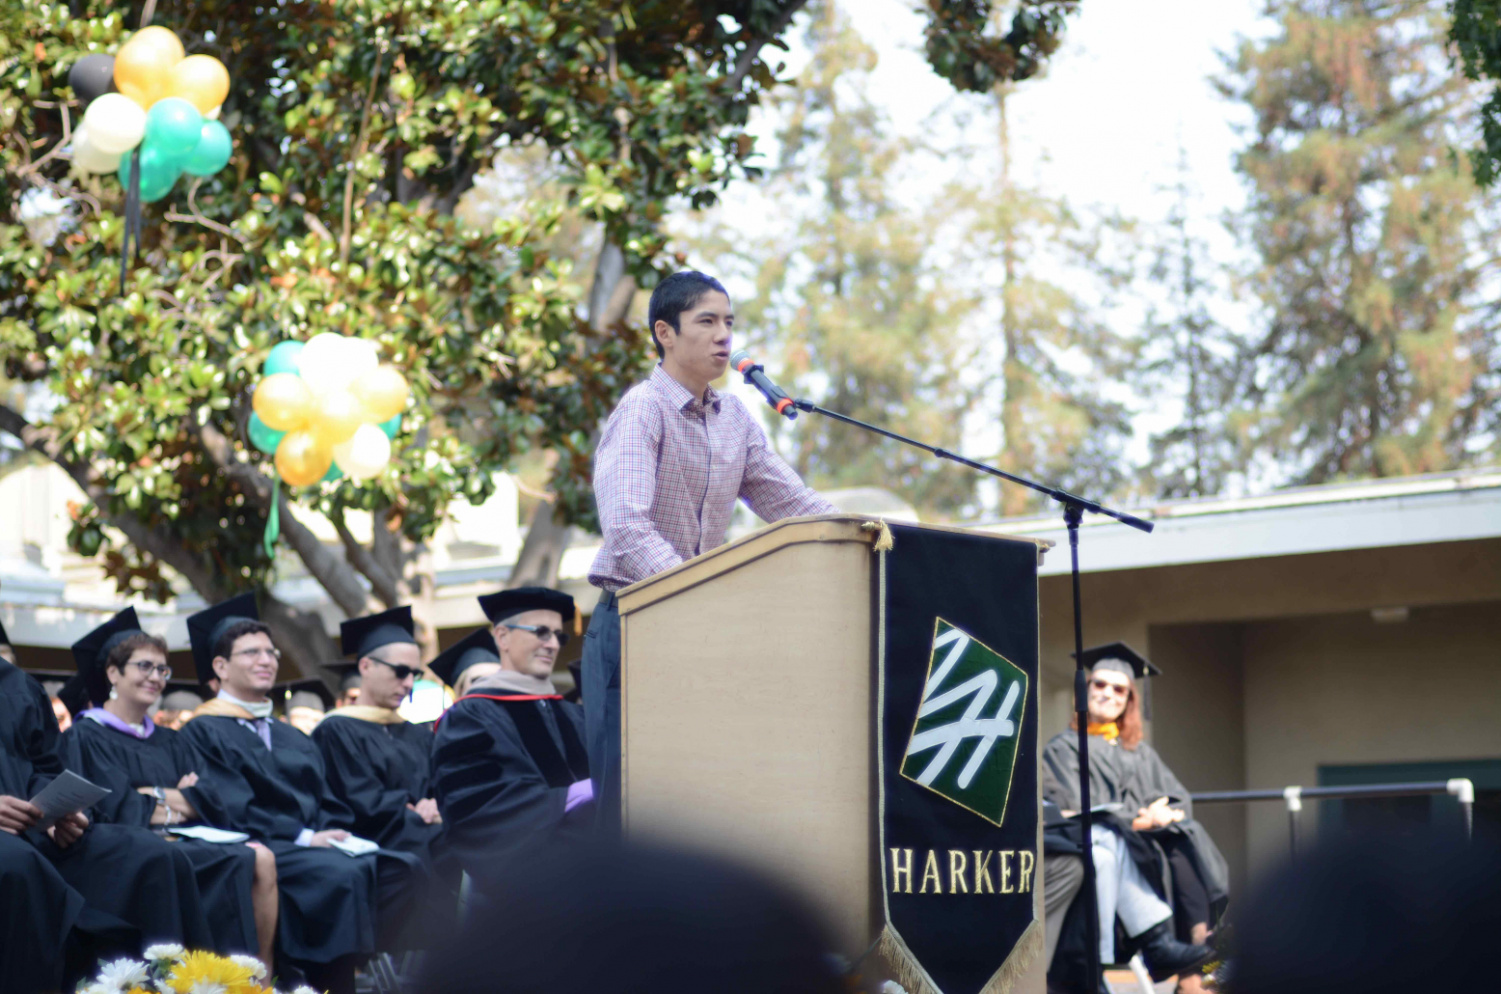 Former ASB president Sandip Nirmel ('17) makes a speech at matriculation in 2016. The Harvard Crimson reported Friday that Sandip, who was a sophomore at Harvard University, died of